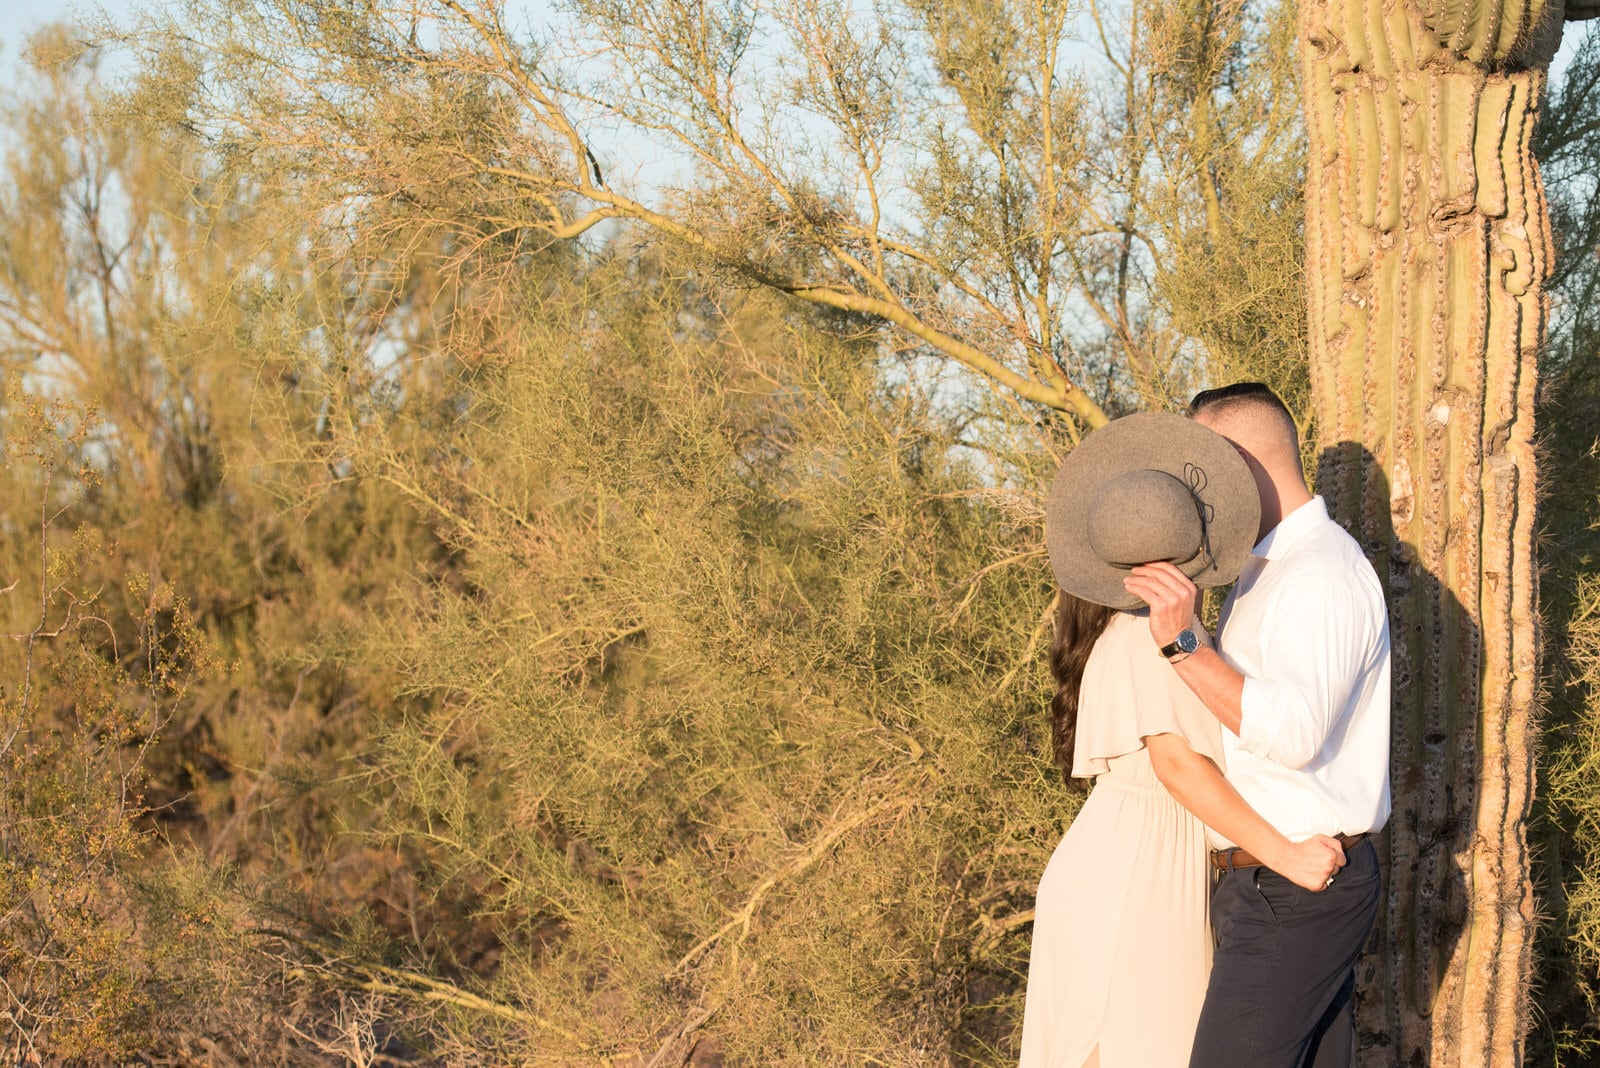 The couple is leaning against the cactus facing each other.